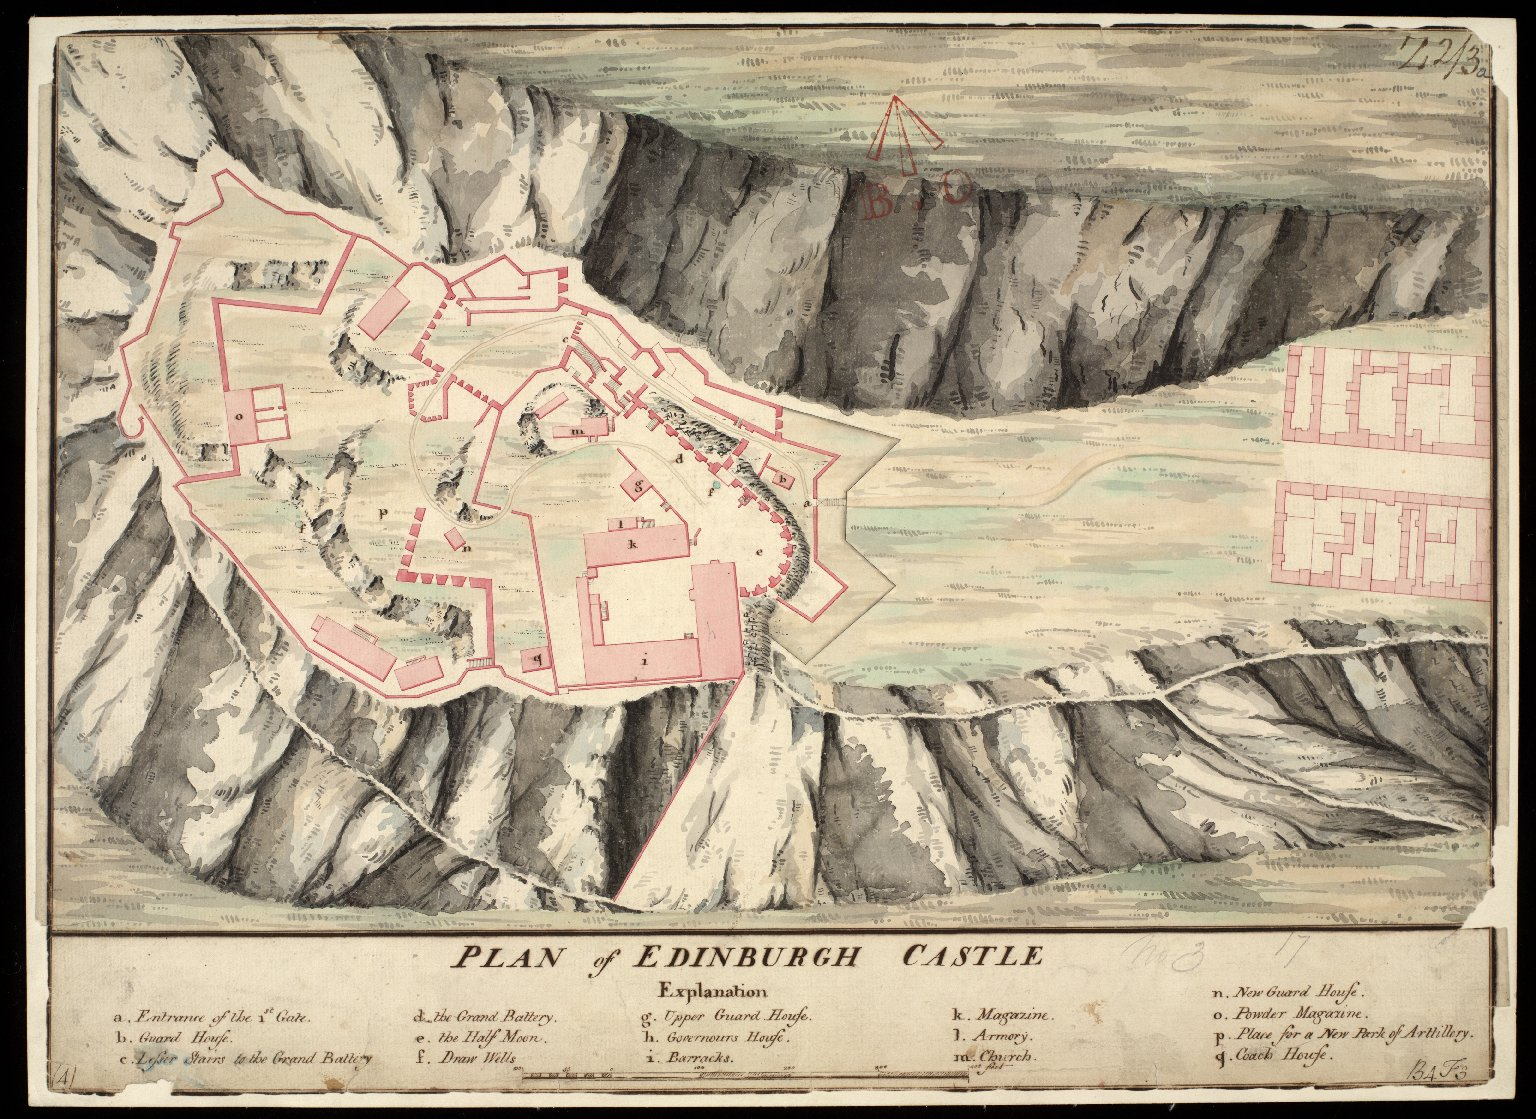 Plan of Edinburgh Castle [1 of 1]